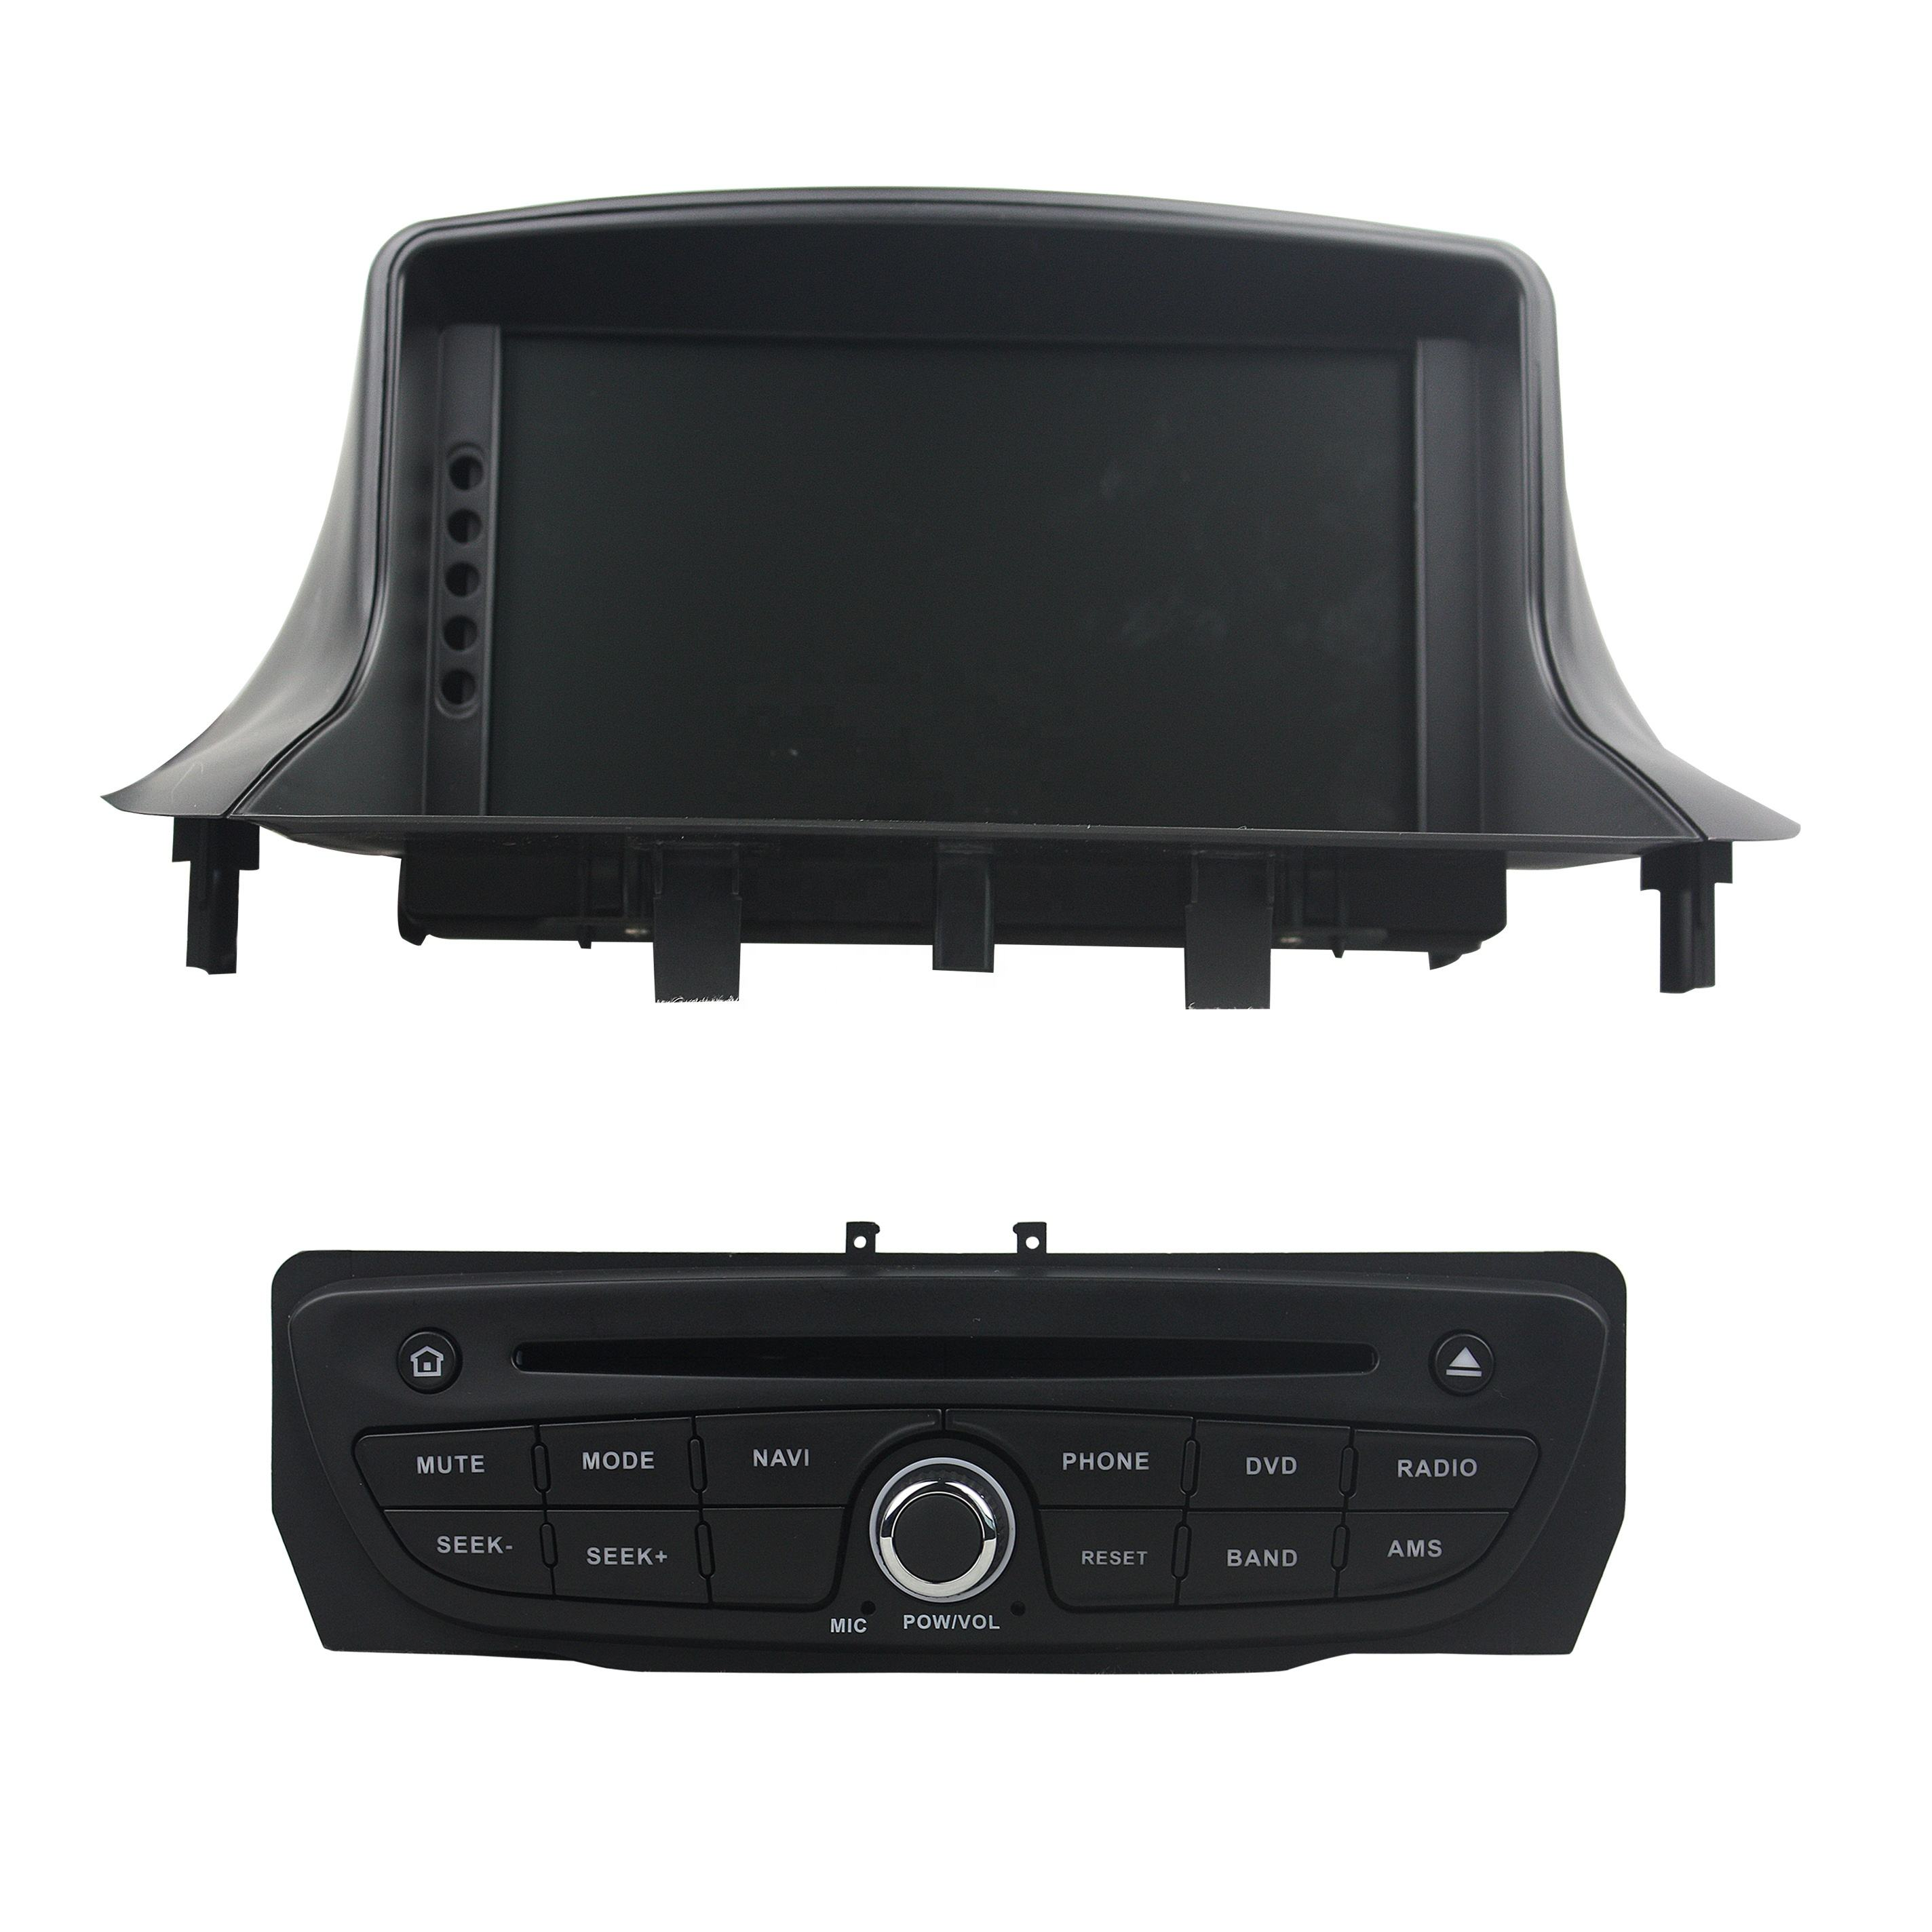 7 incn Android 9.0 4GB + 32GB Auto radio <span class=keywords><strong>DVD</strong></span>-player wifi GPS Navigation für Renault Megane III Fluence 2009-2016